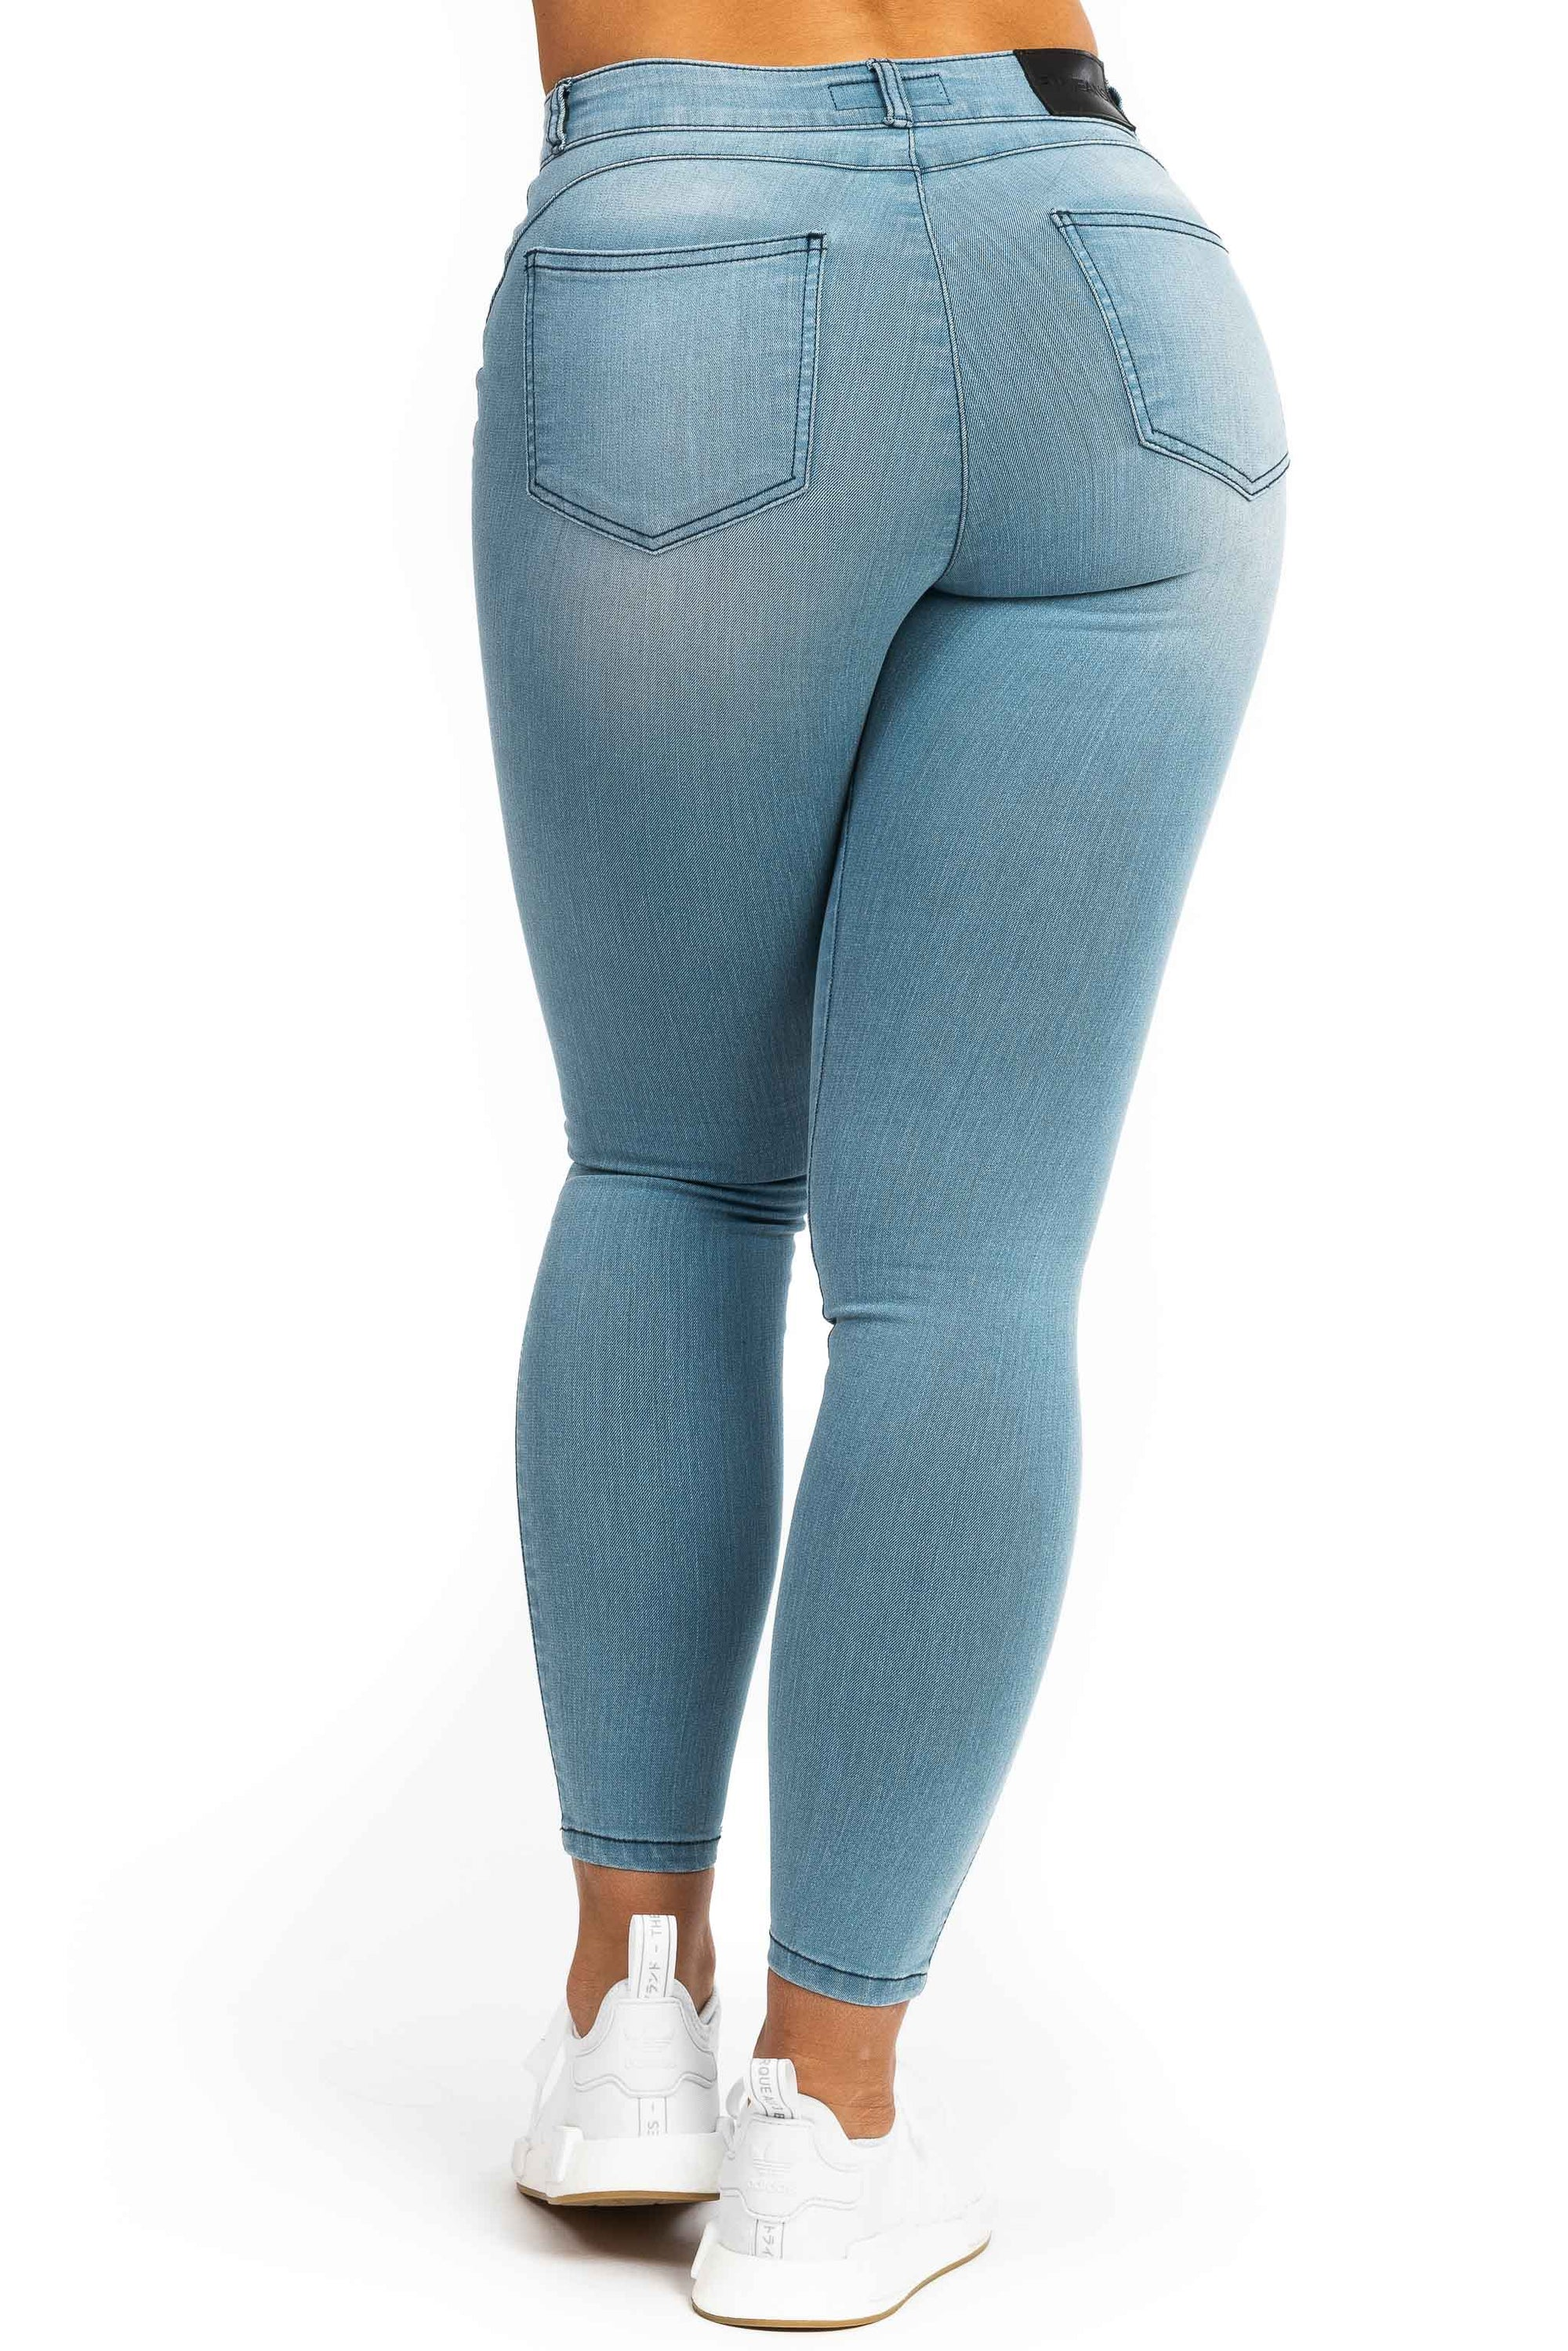 Womens Contour Mid Waisted Fitjeans - Bleach Blue